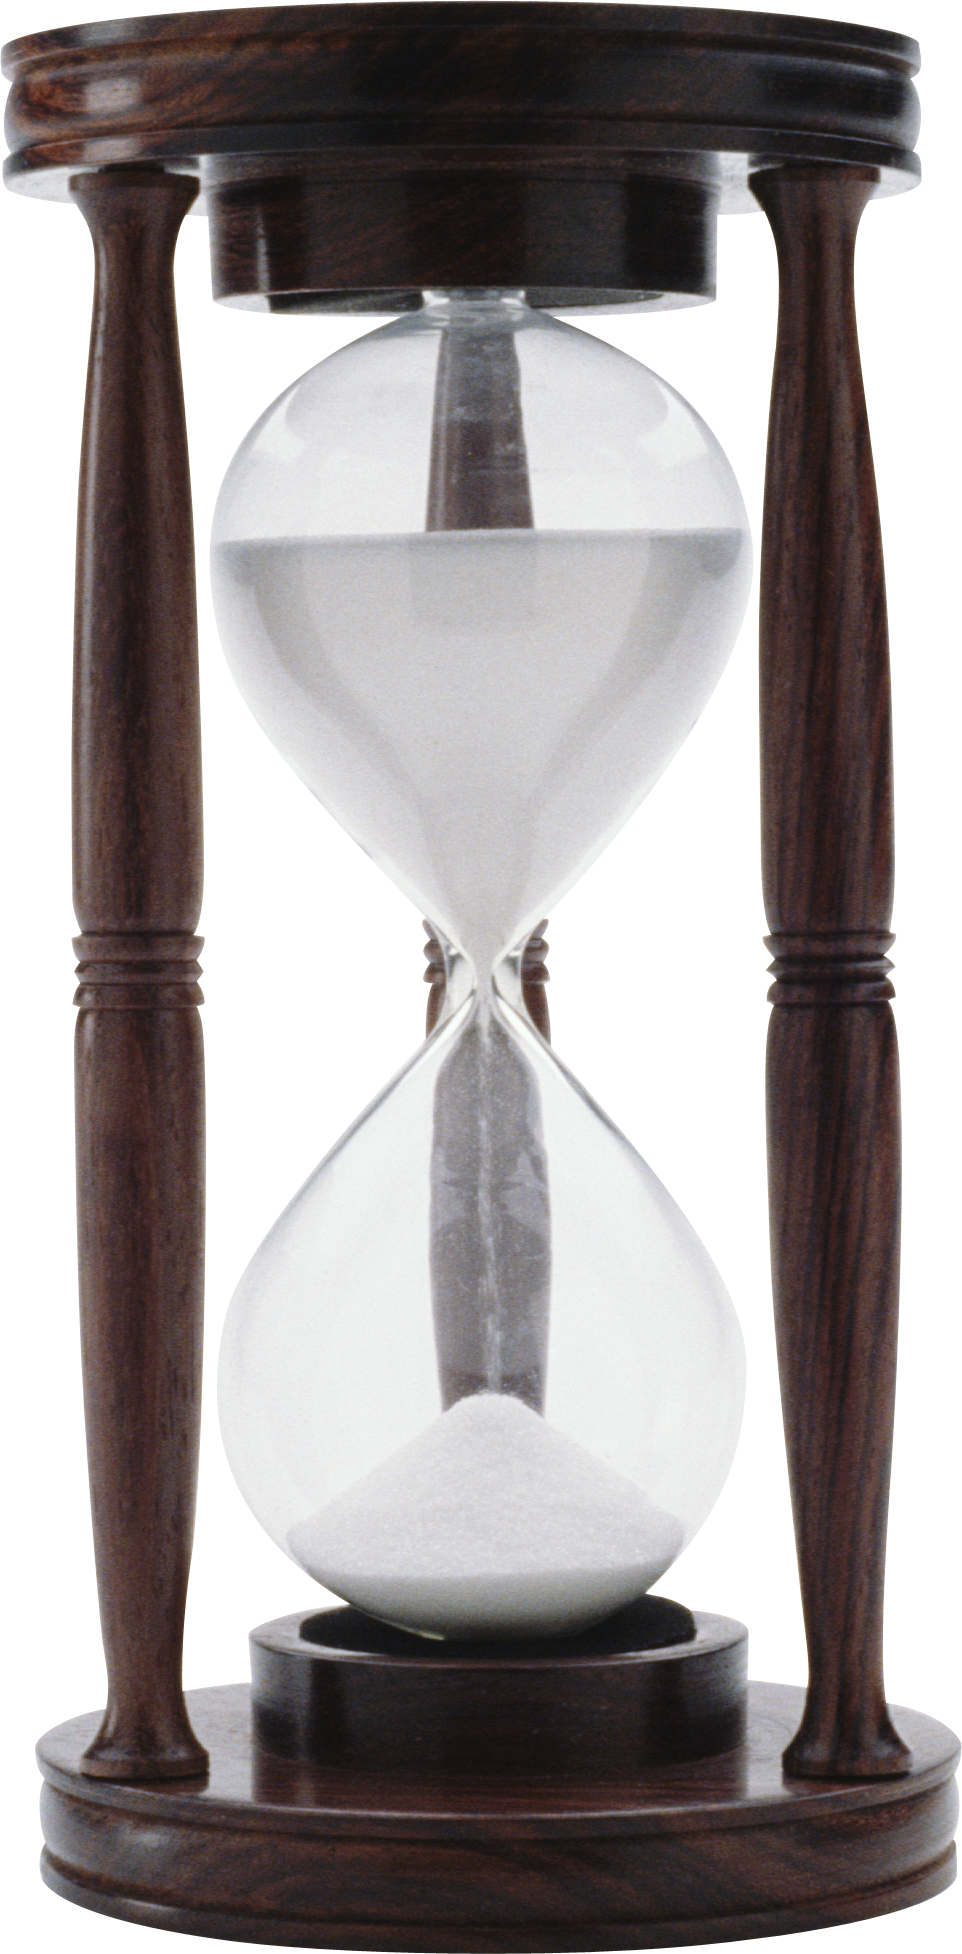 Hourglass Tattoo Ideas and Hourglass Meaning on Whats-Your